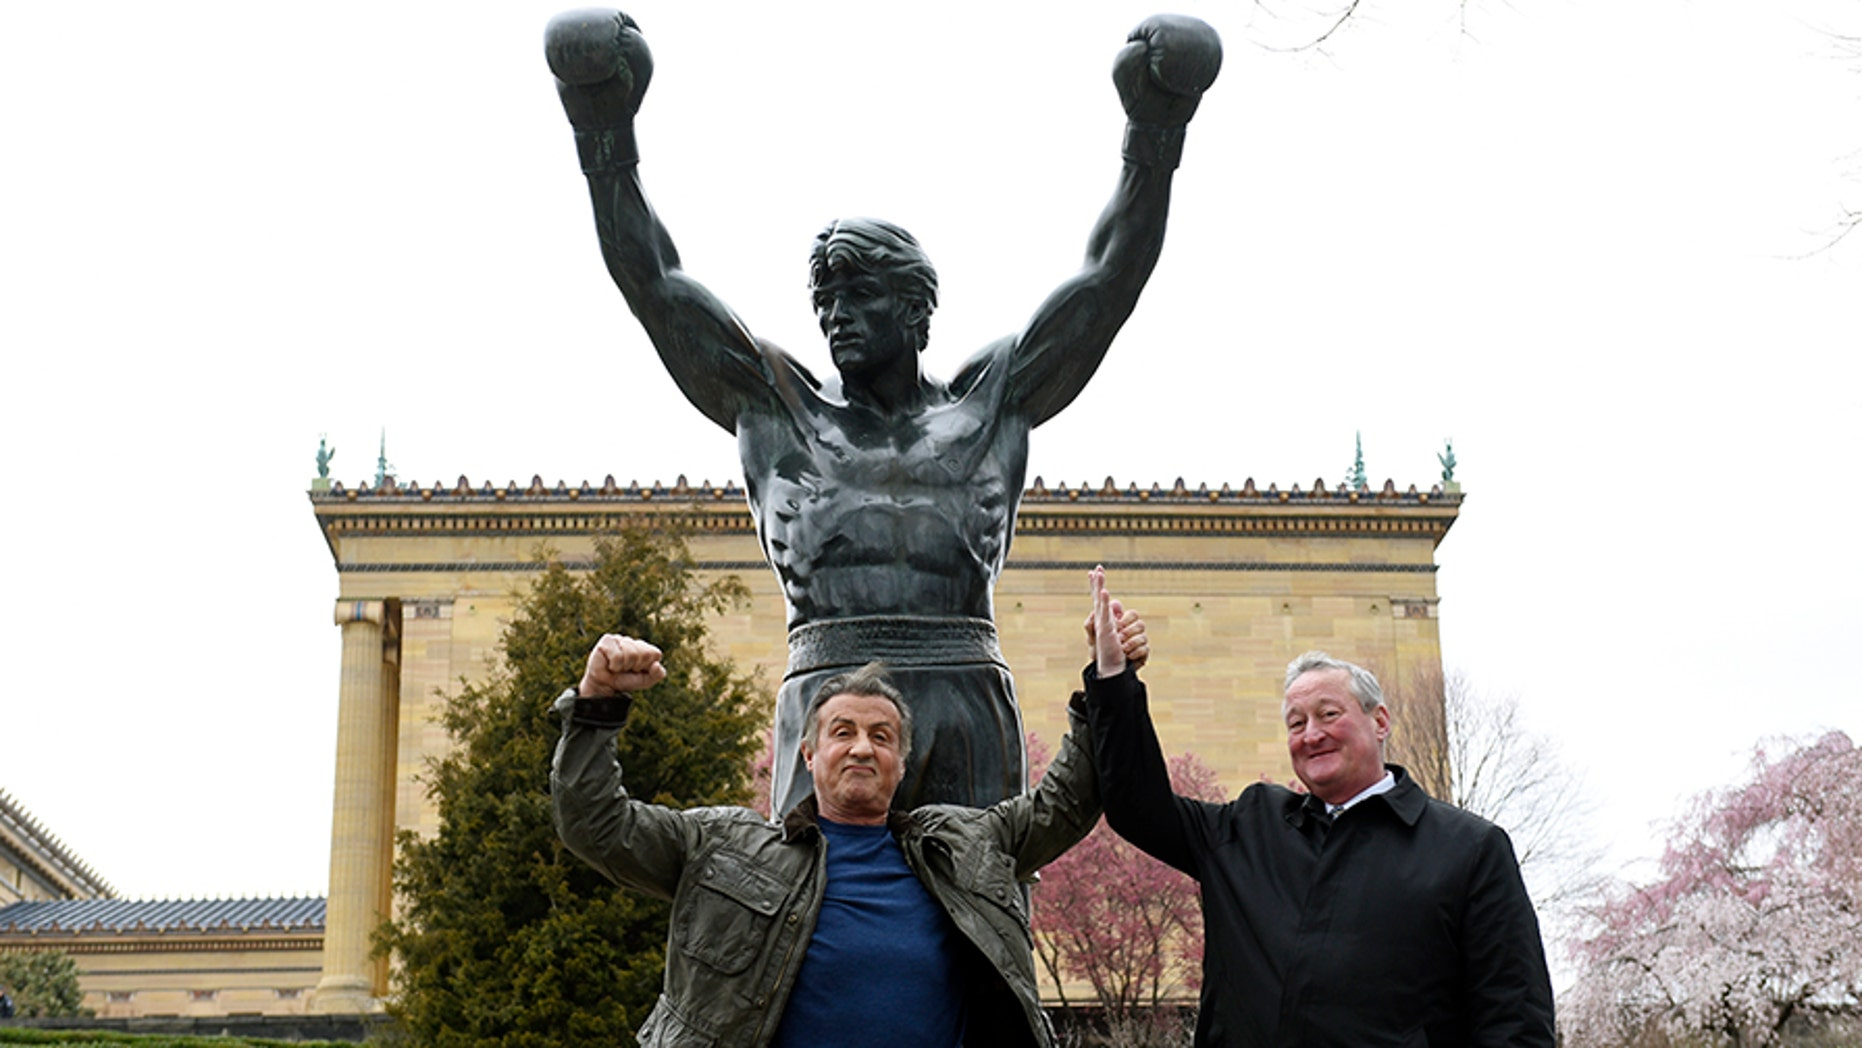 Sylvester Stallone, left, poses with Philadelphia Mayor Jim Kenney in front of the Rocky statue at the Philadelphia Art Museum on Friday.